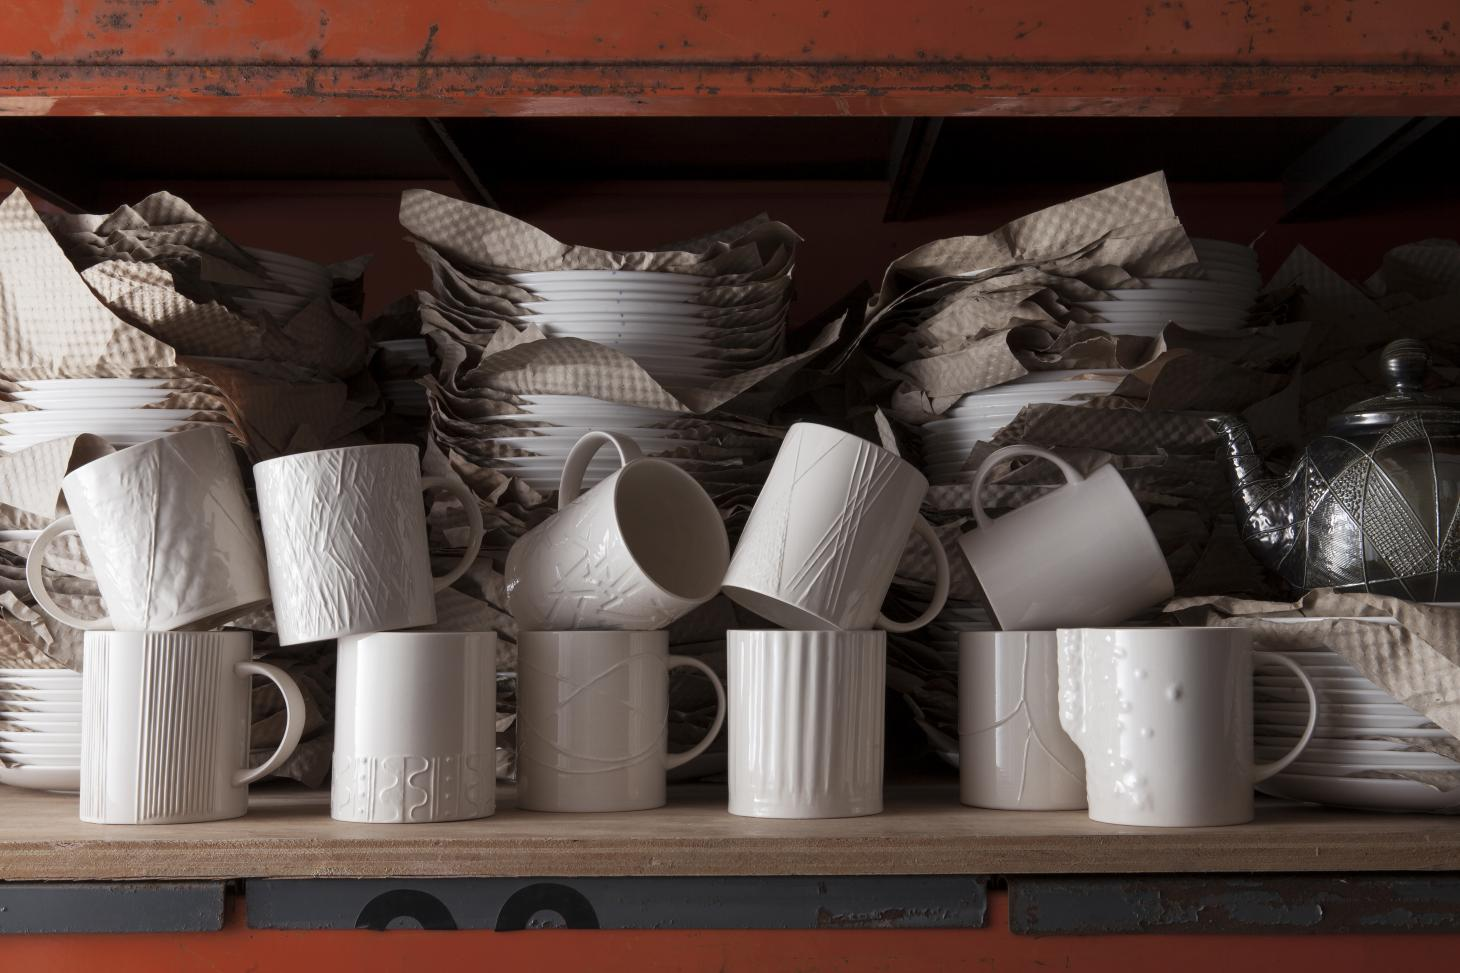 White ceramic cups with textured surfaces by Martino Gamper